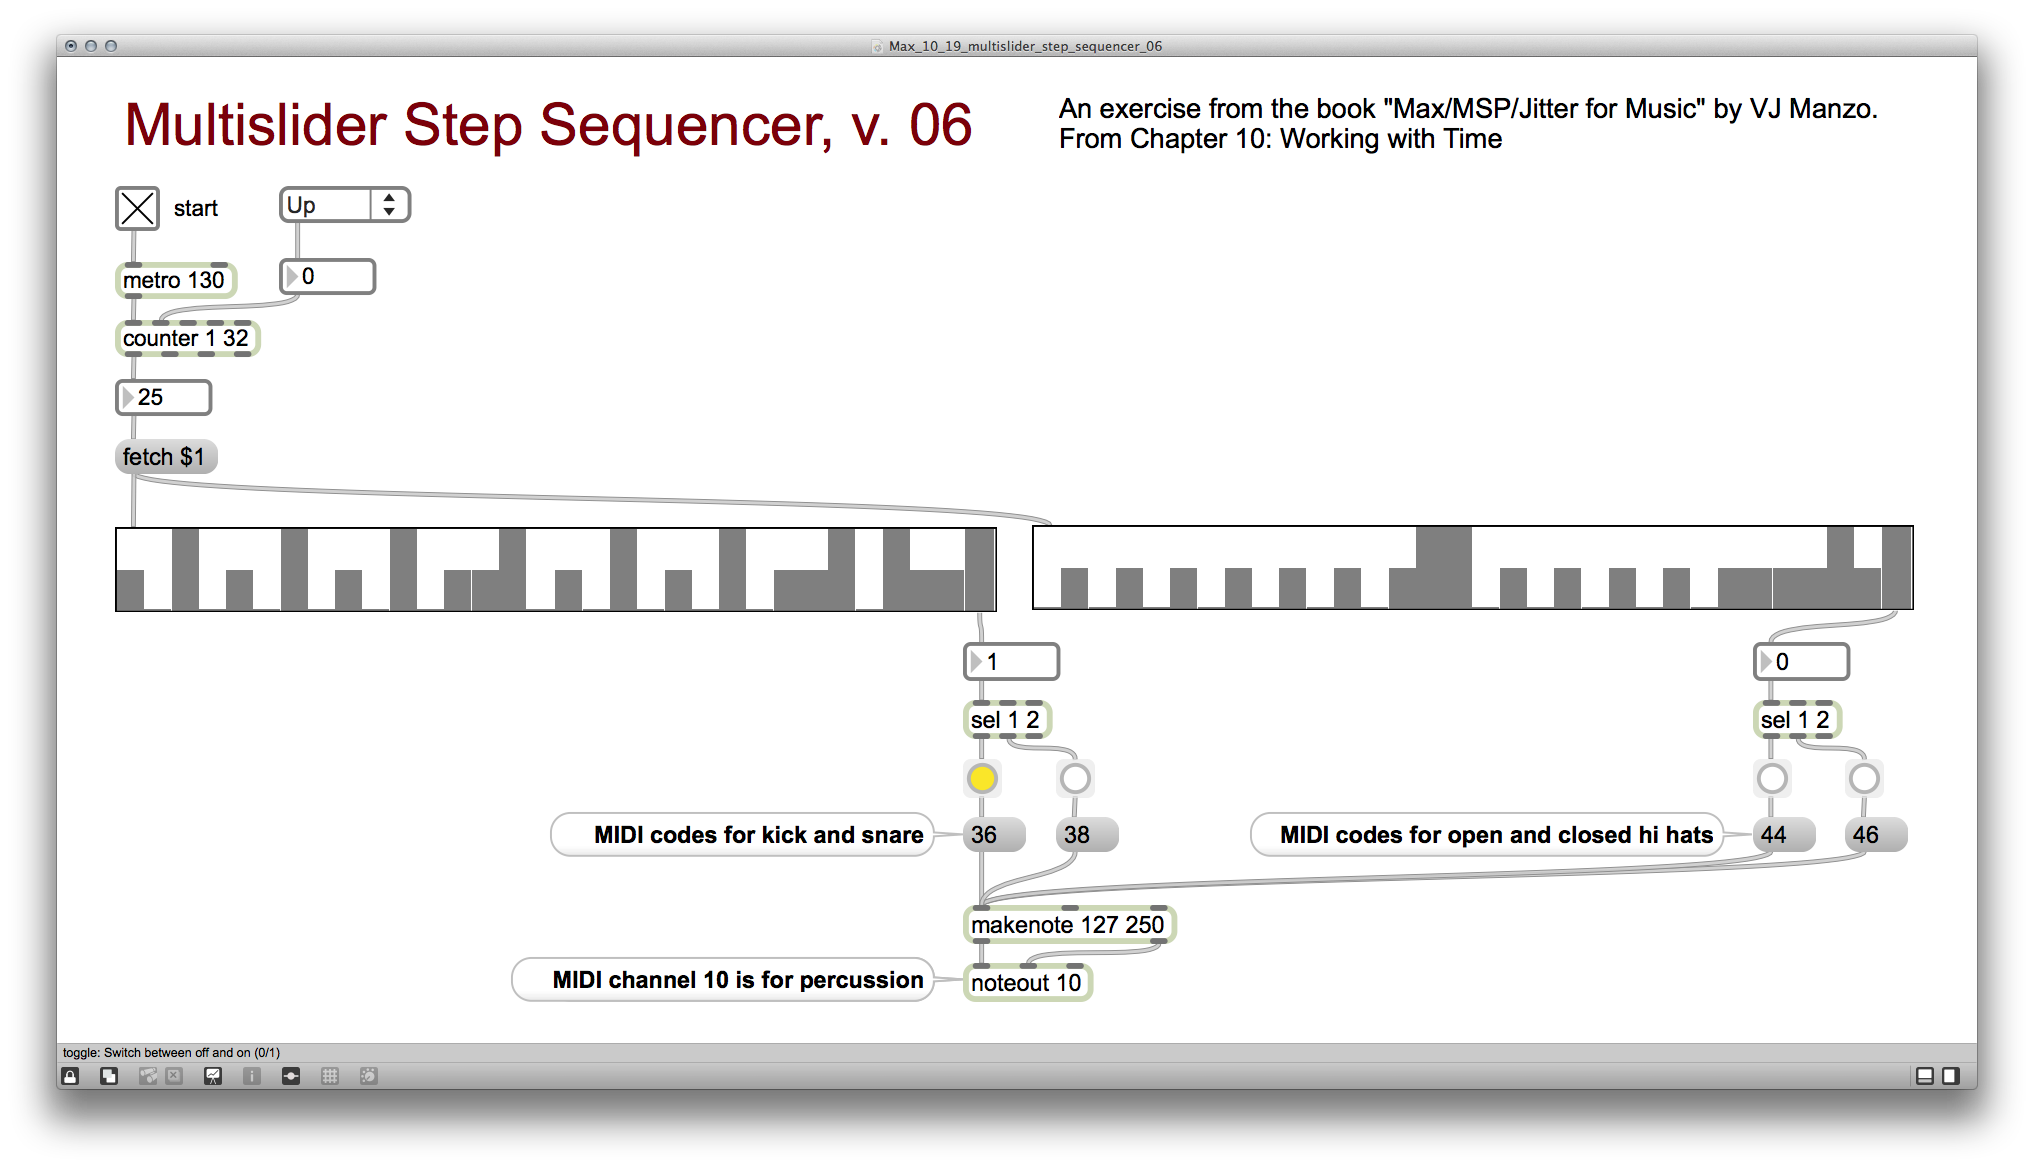 max_10_19_multislider_step_sequencer_06.png